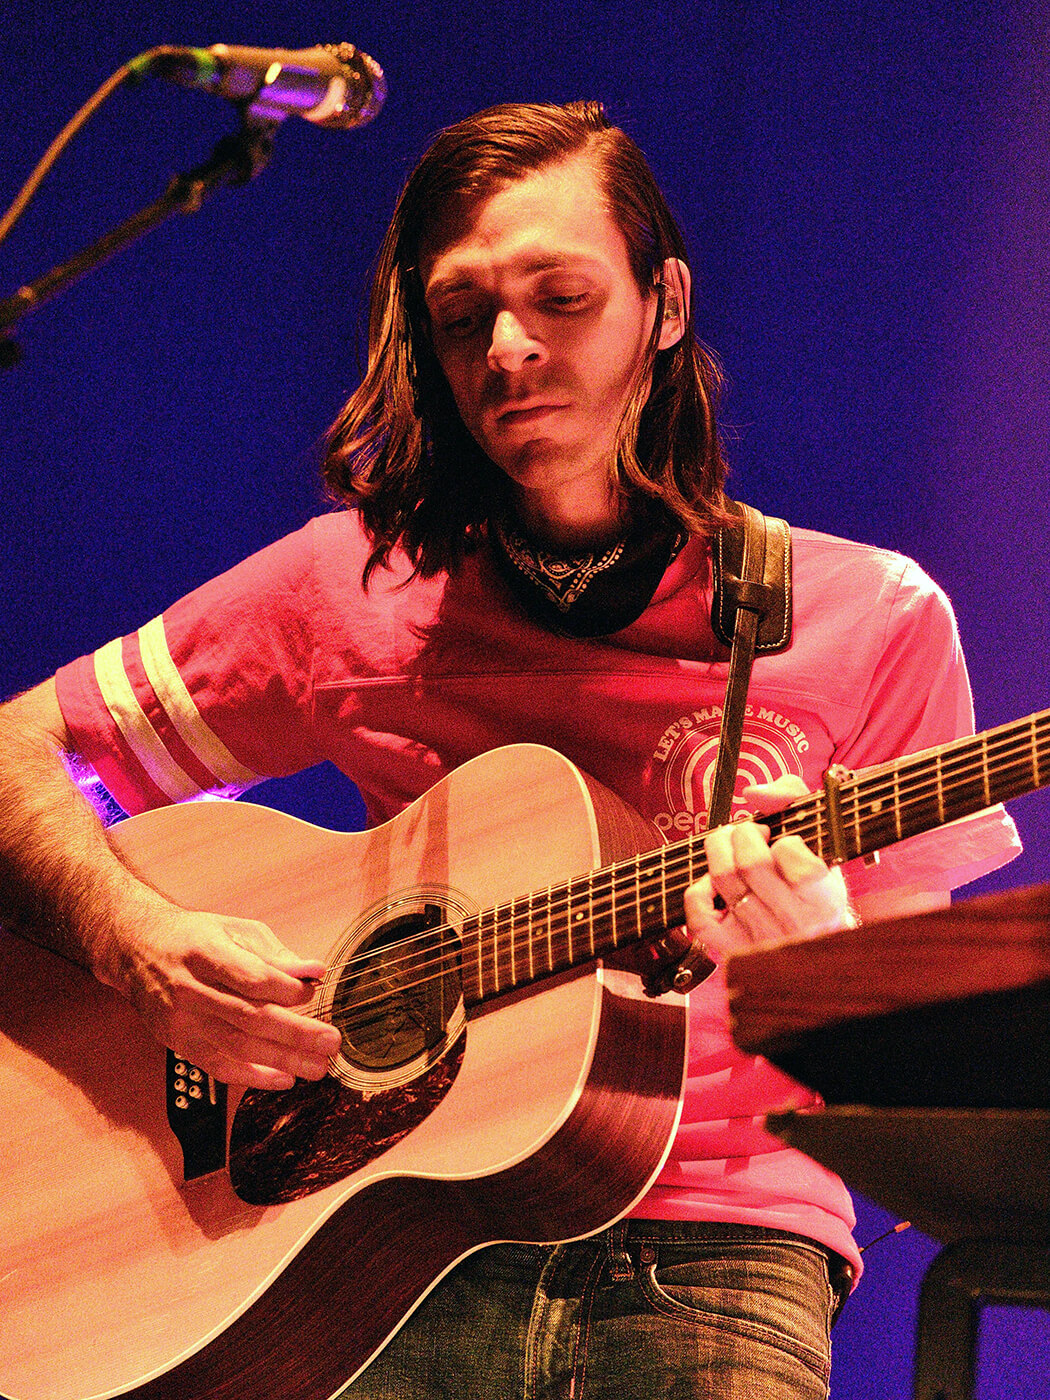 Anthony Lamarca performing with an acoustic guitar.